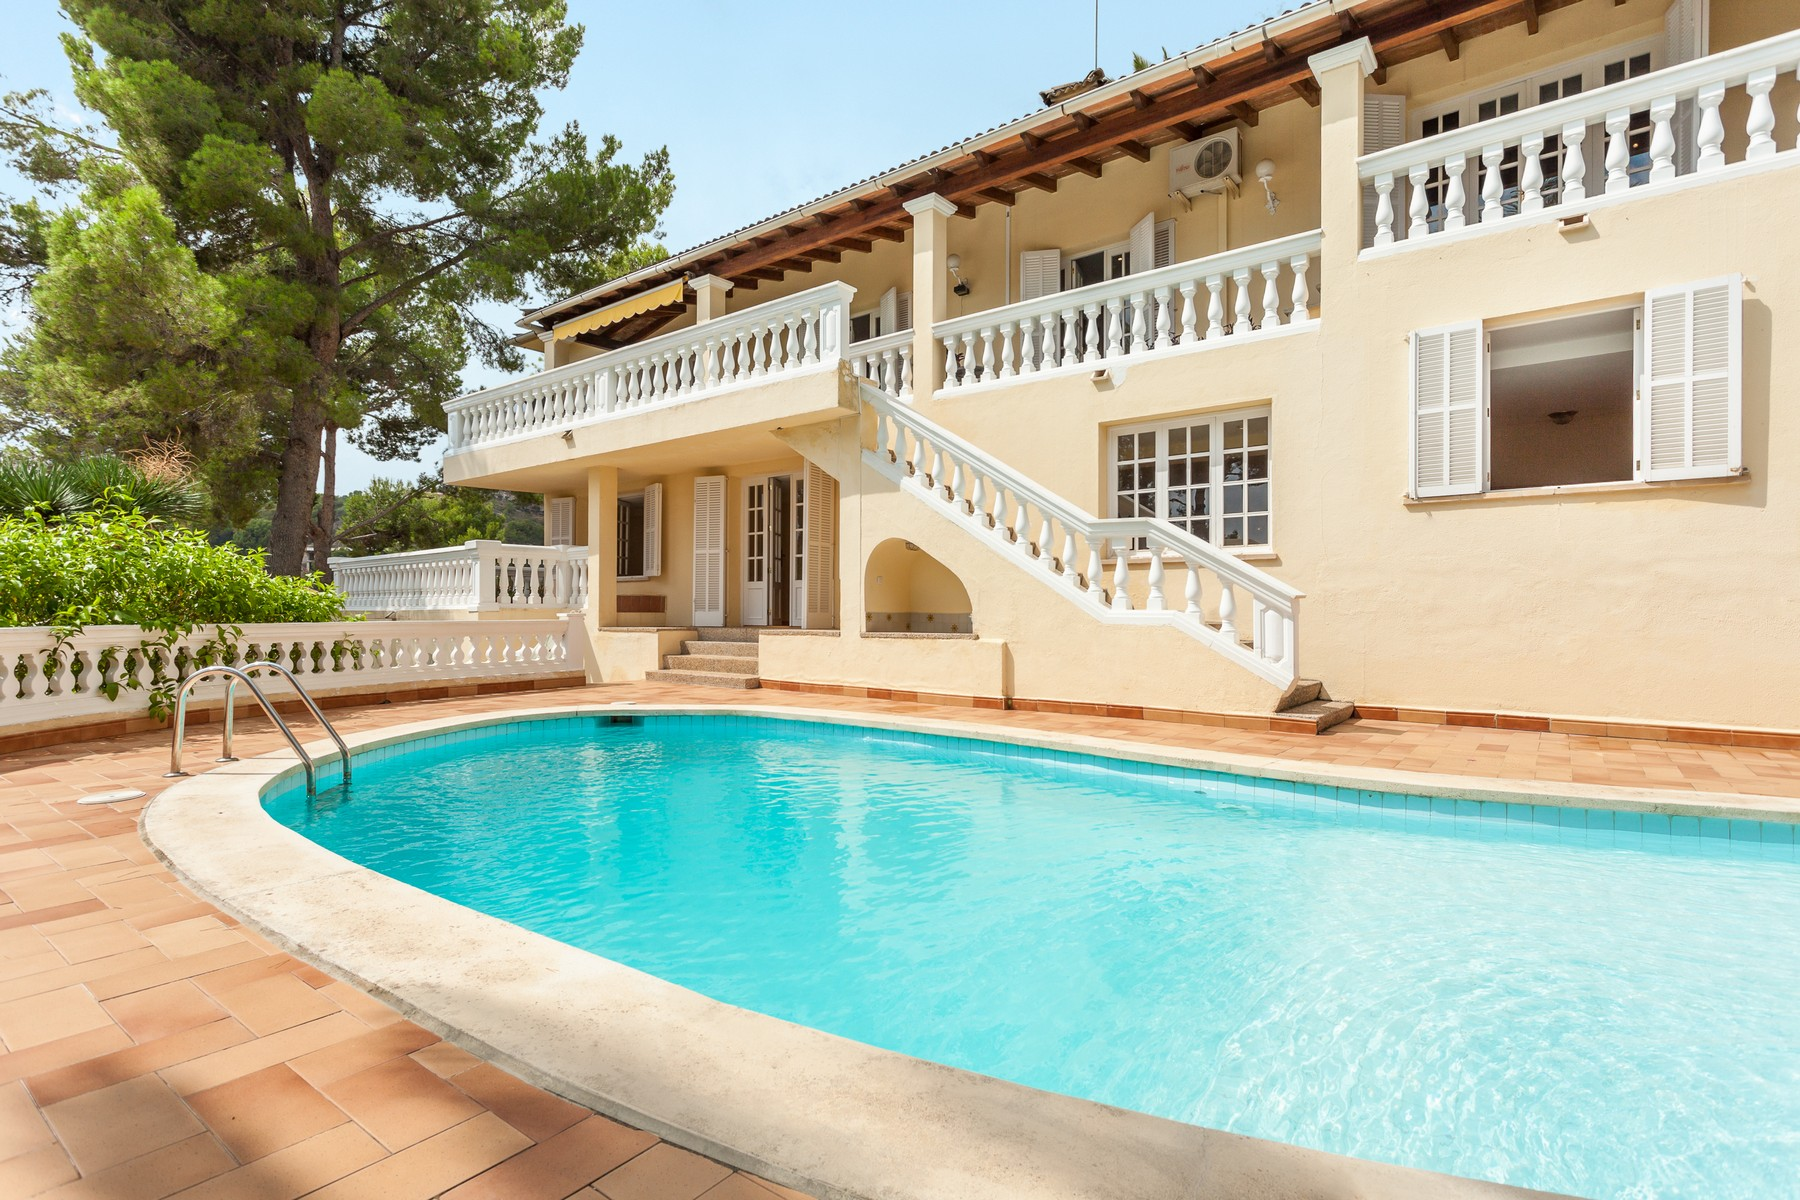 Single Family Home for Sale at Classic Villa in Son Vida Palma Center, Mallorca 07001 Spain